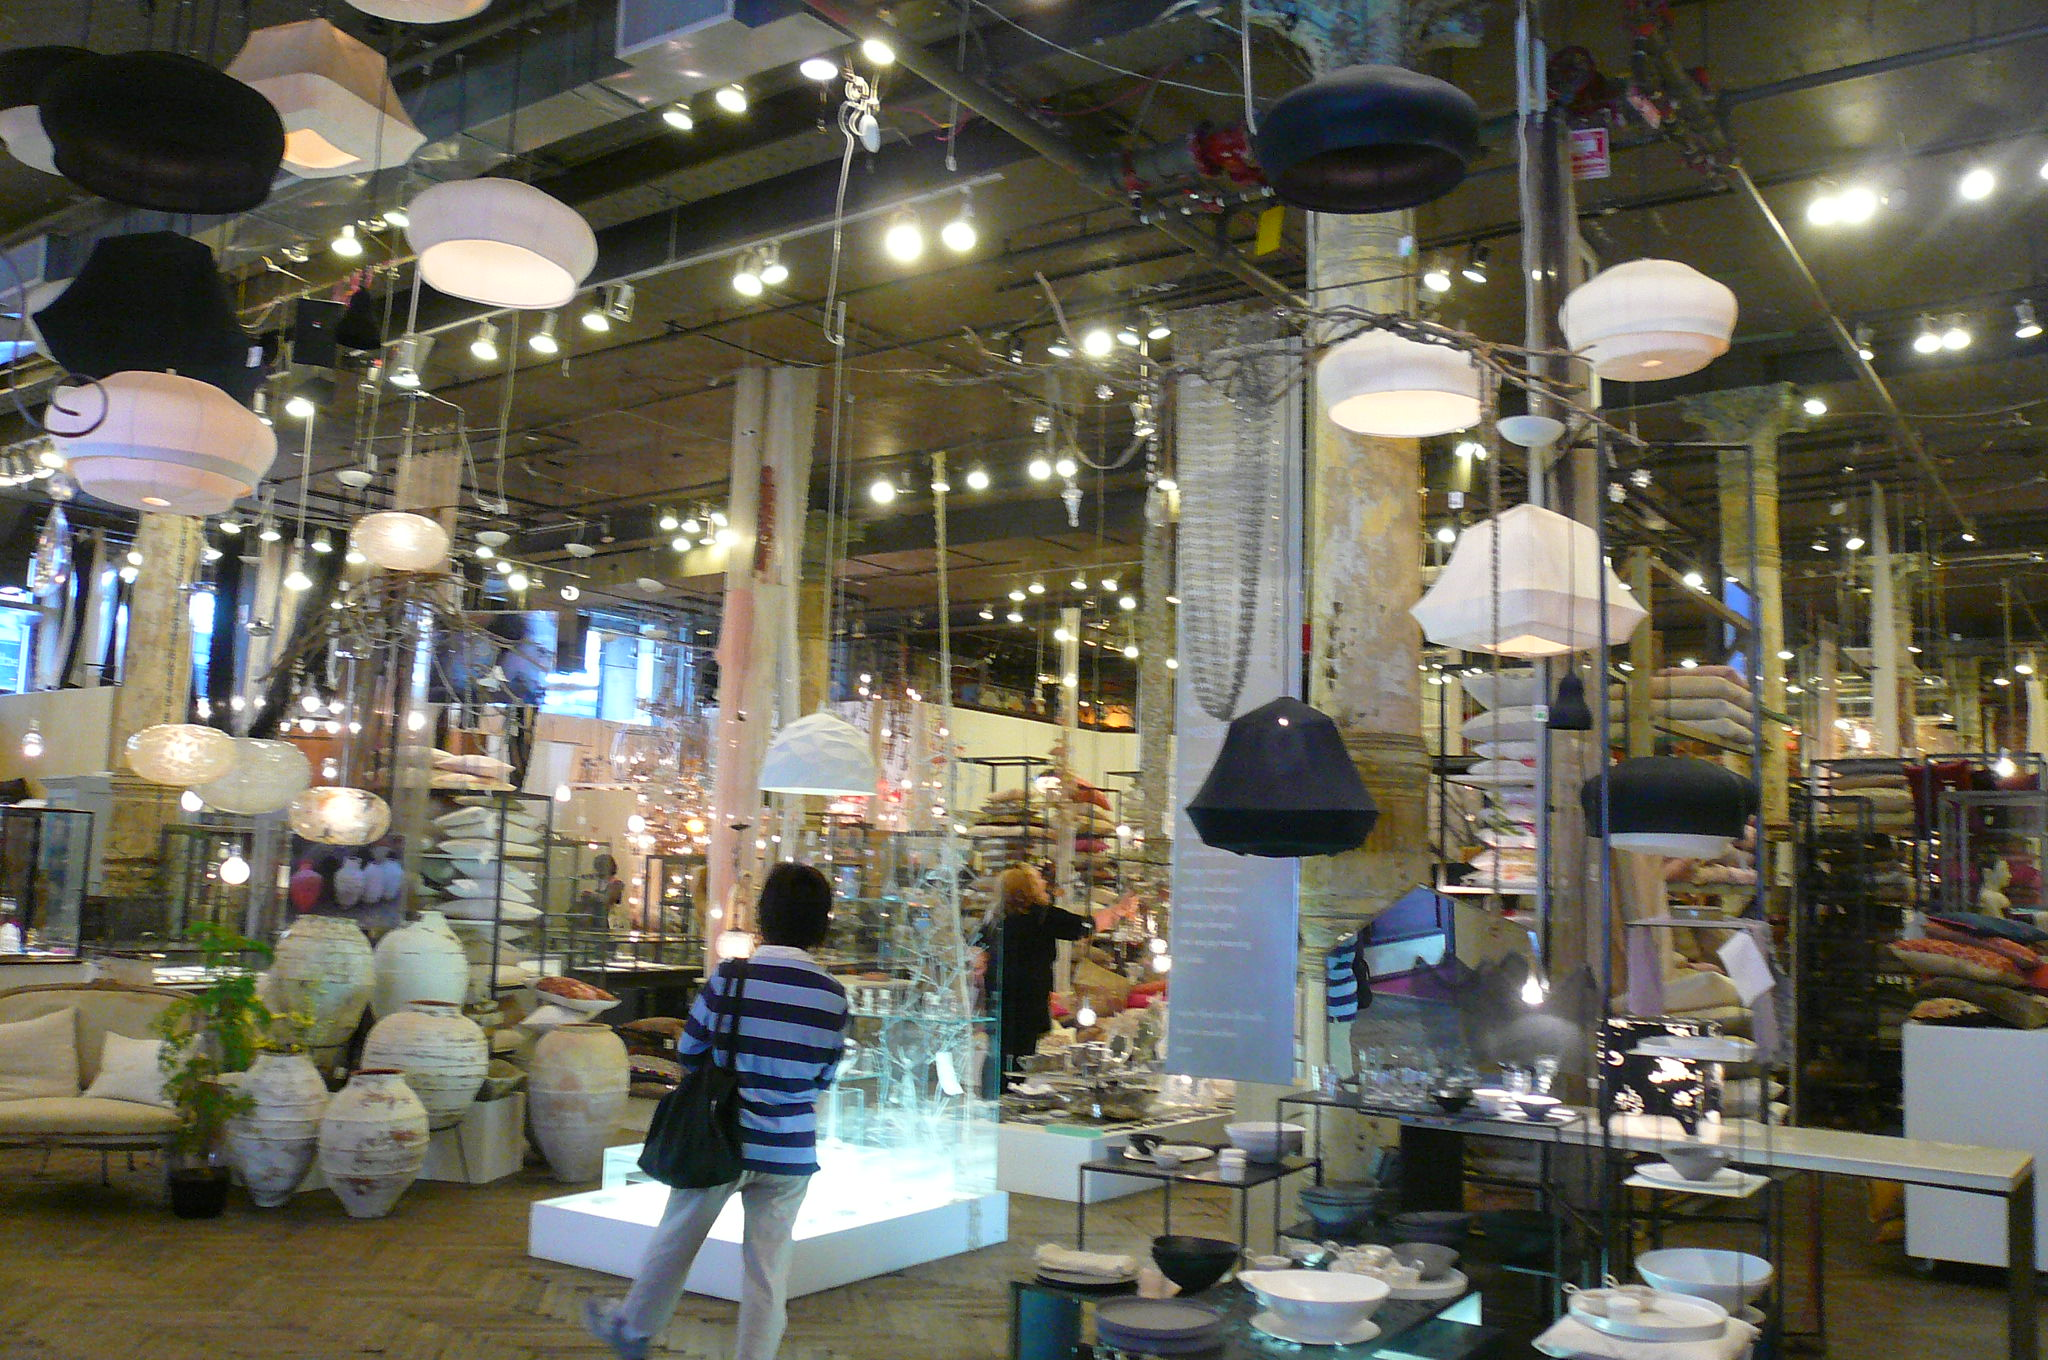 Next stop: my favorite-ever store, the surreal design fantasyland that is ABC Carpet & Home. It's six stories of sensory overload, but in the best way possible.